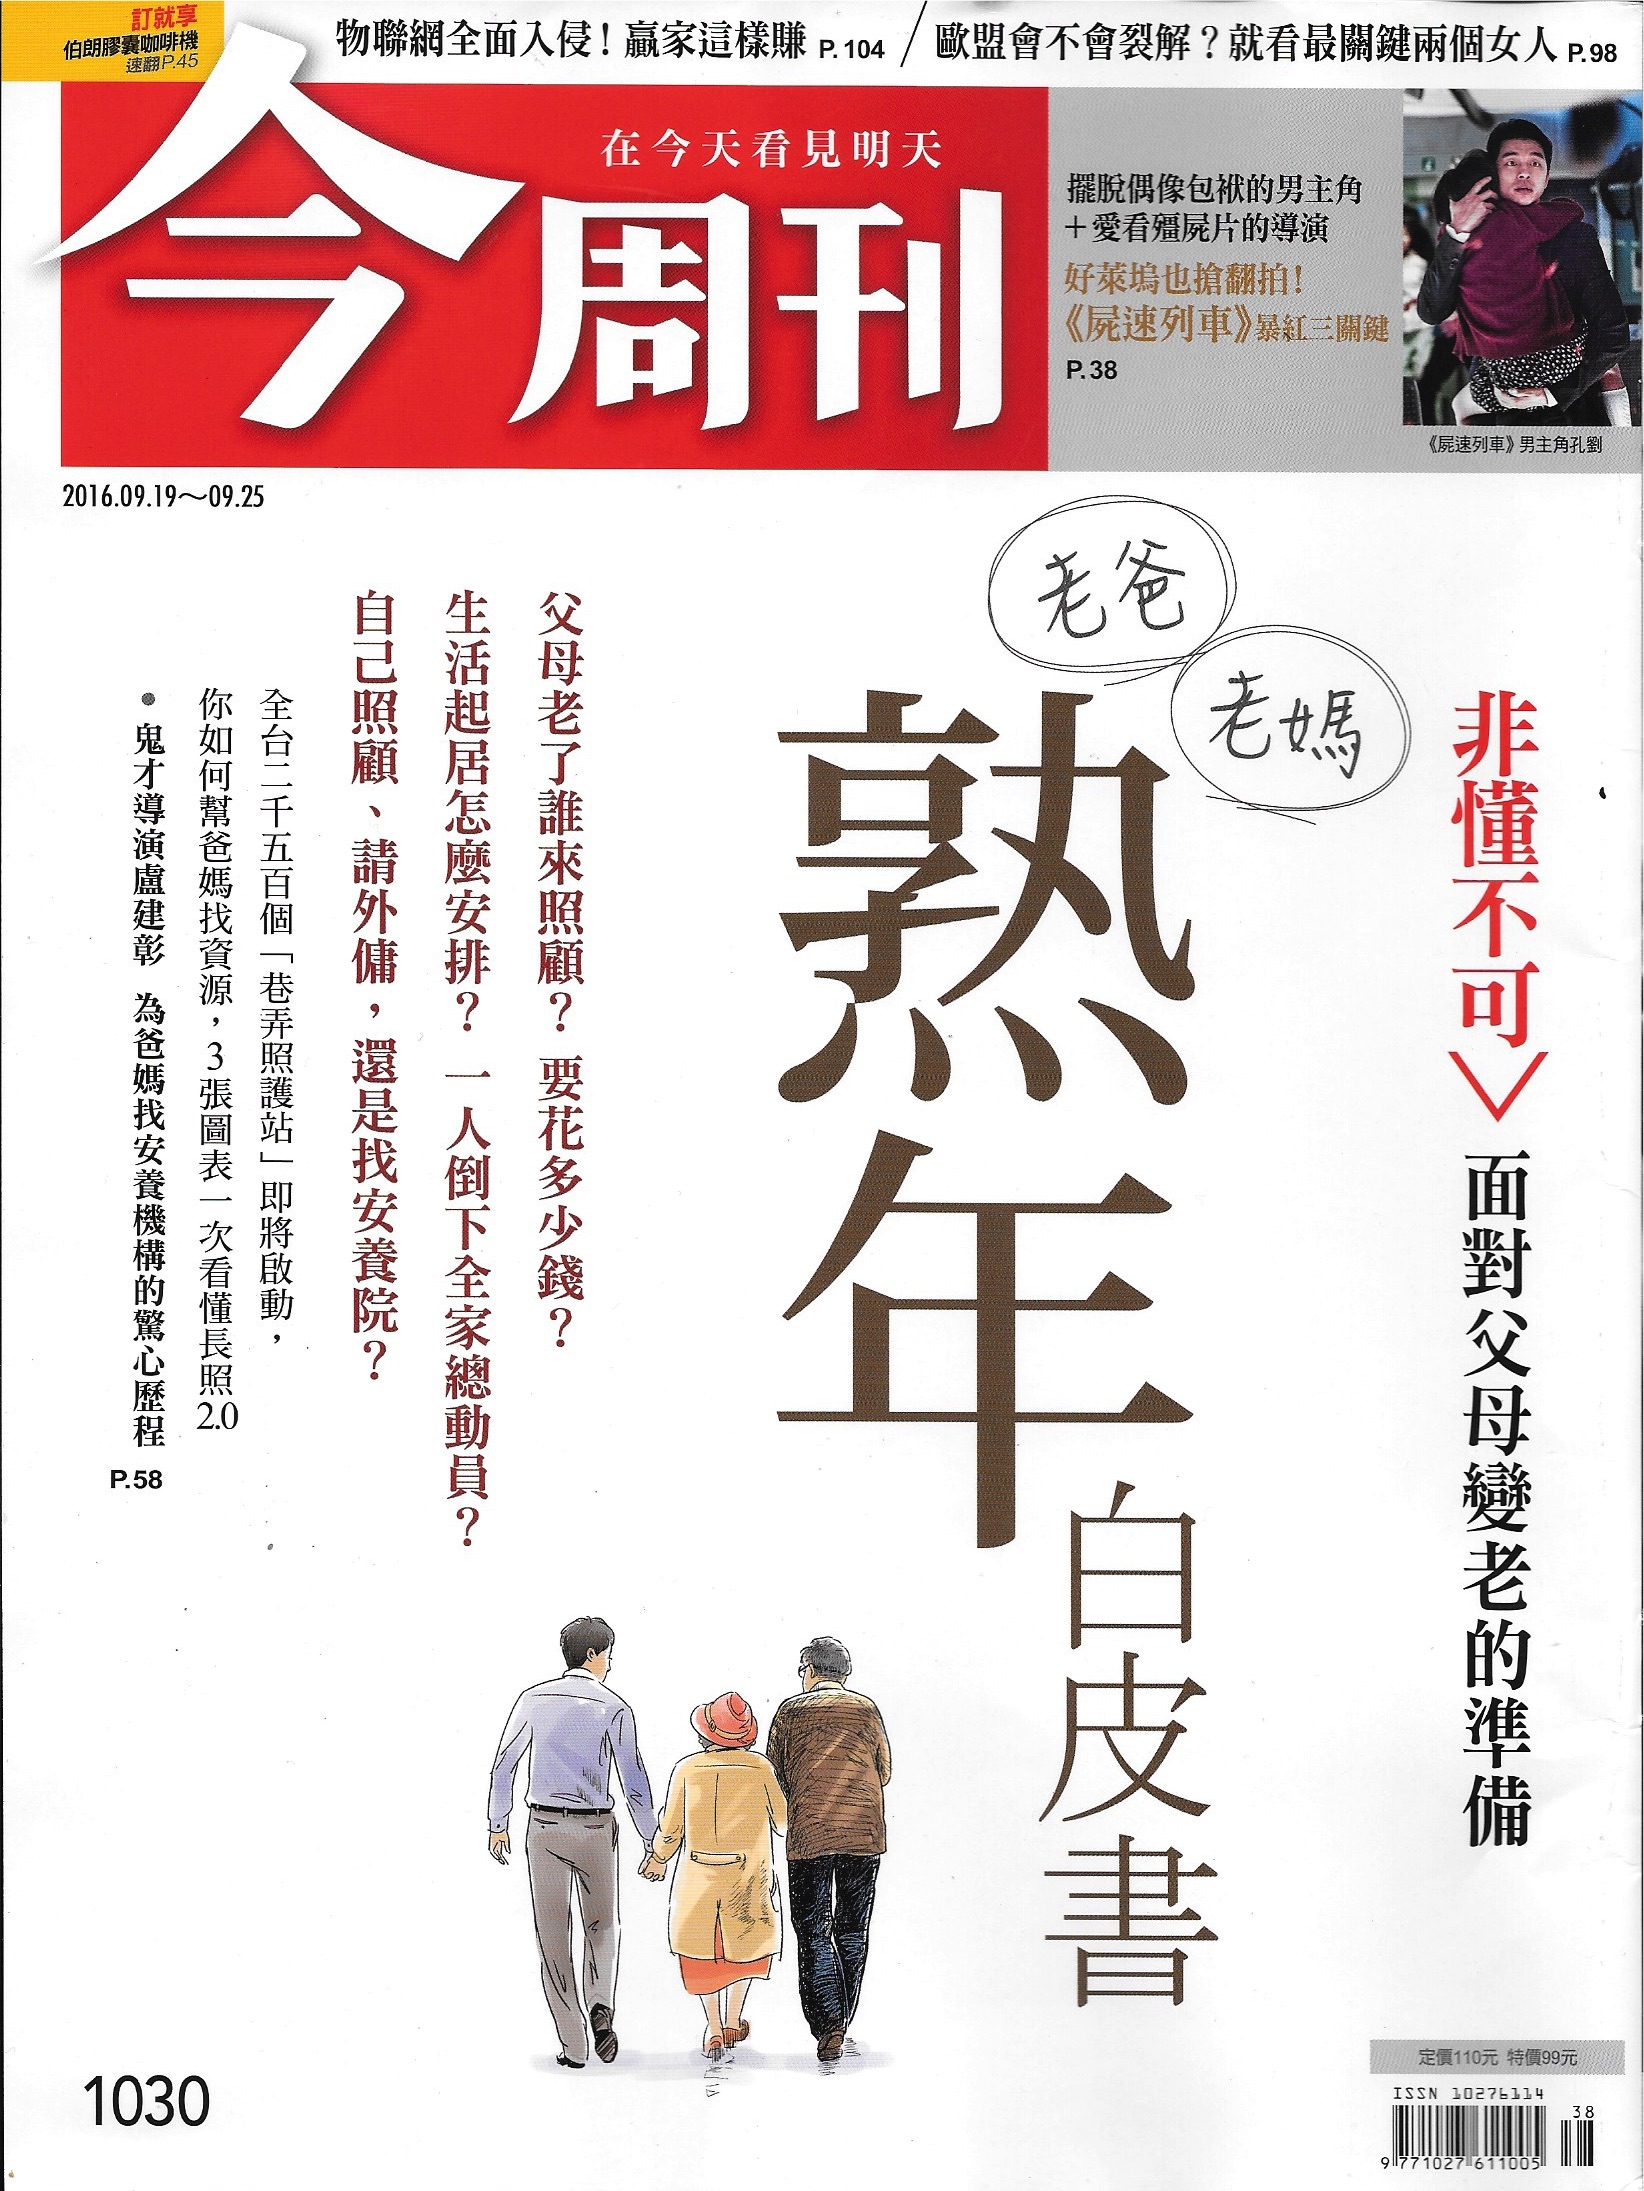 NOW Financial Magazine cover.jpg